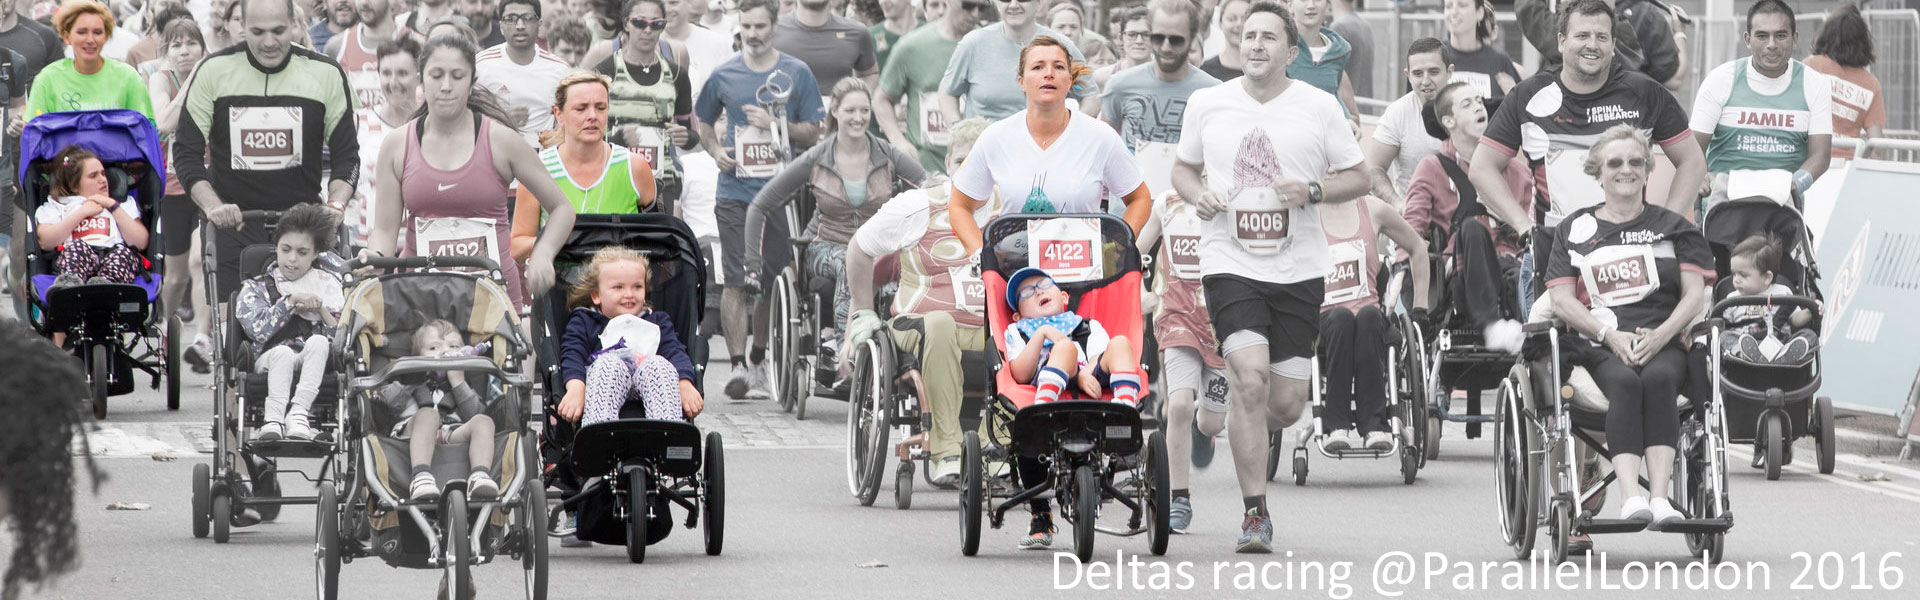 3 Delta Buggies running in Parallel London event 2016